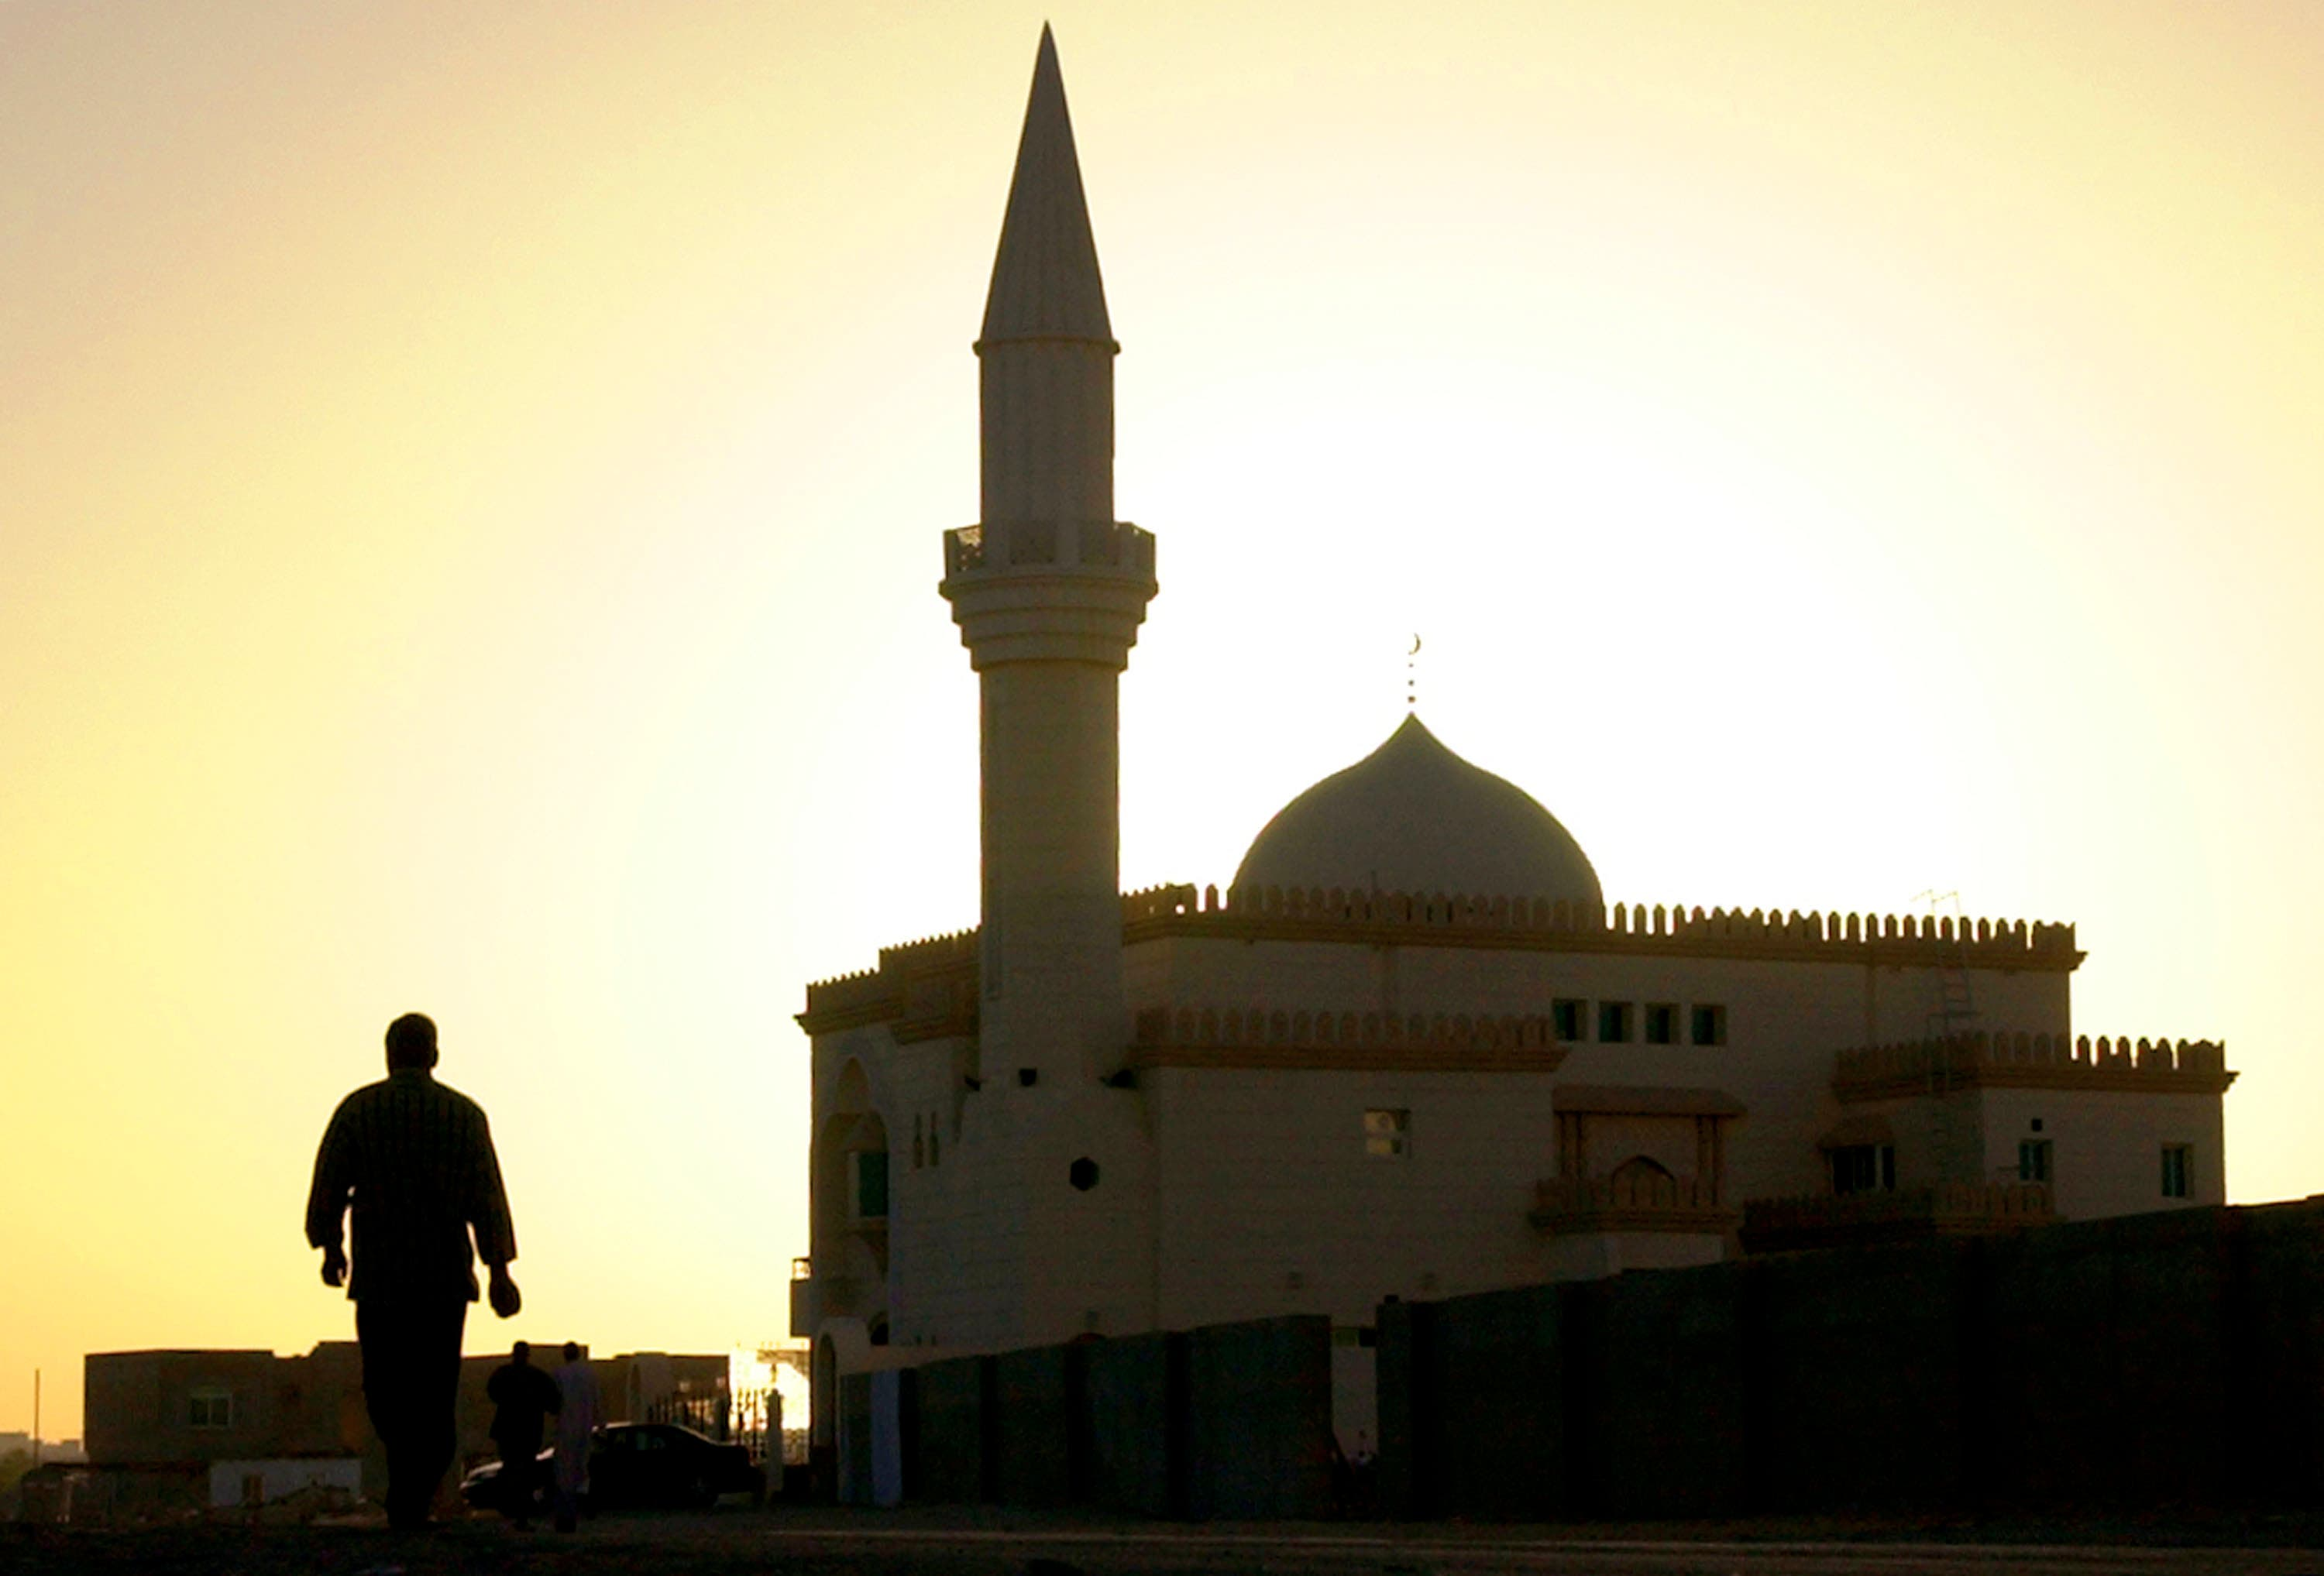 Foreigners residing or visiting Muslim countries often far from finding it noise polluting or an irritant after a period of acclimatization often start to enjoy what is considered hauntingly stirring music